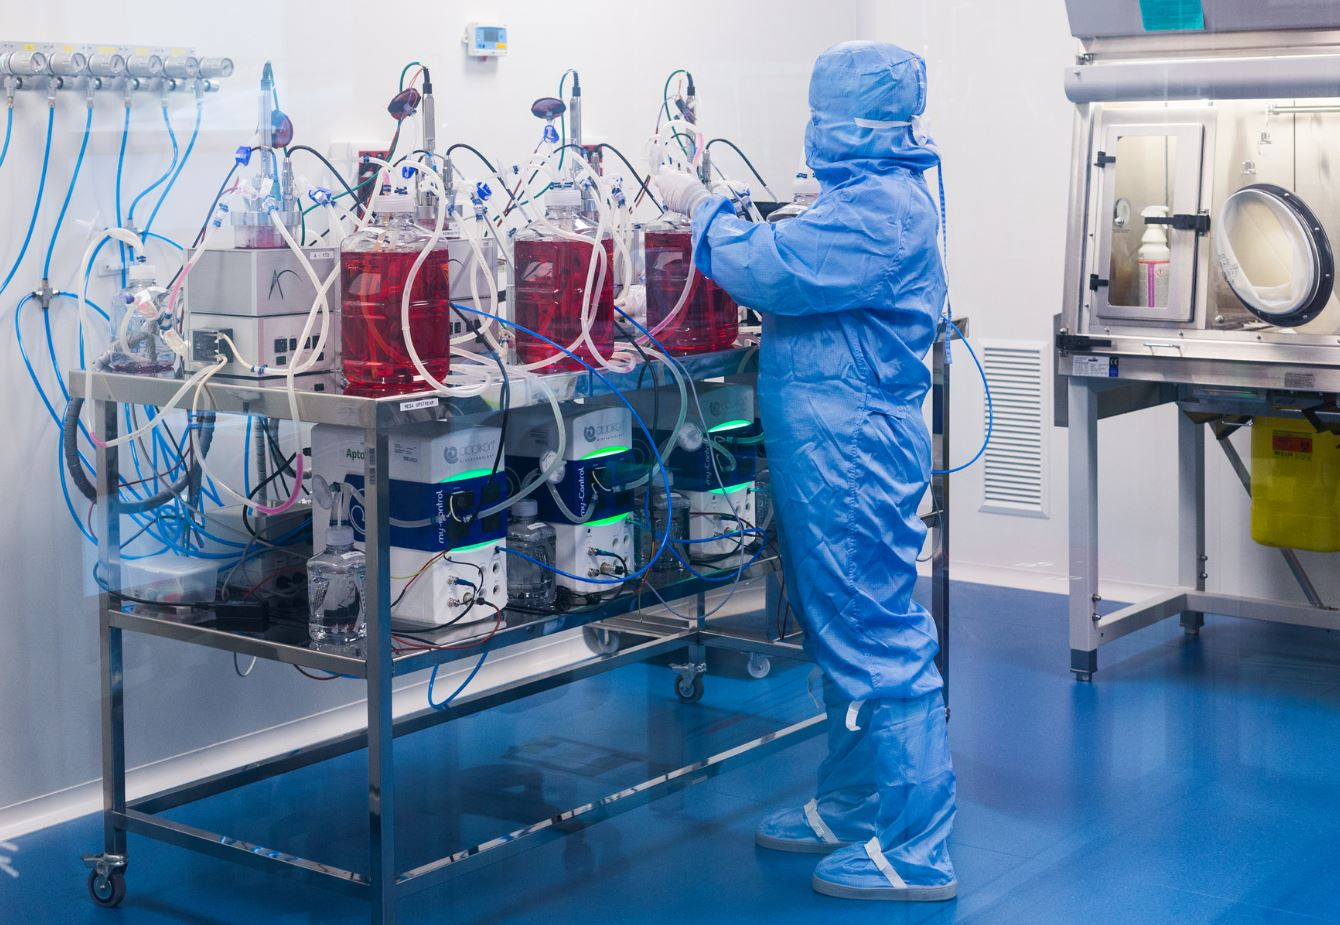 Tasks in the cleanroom